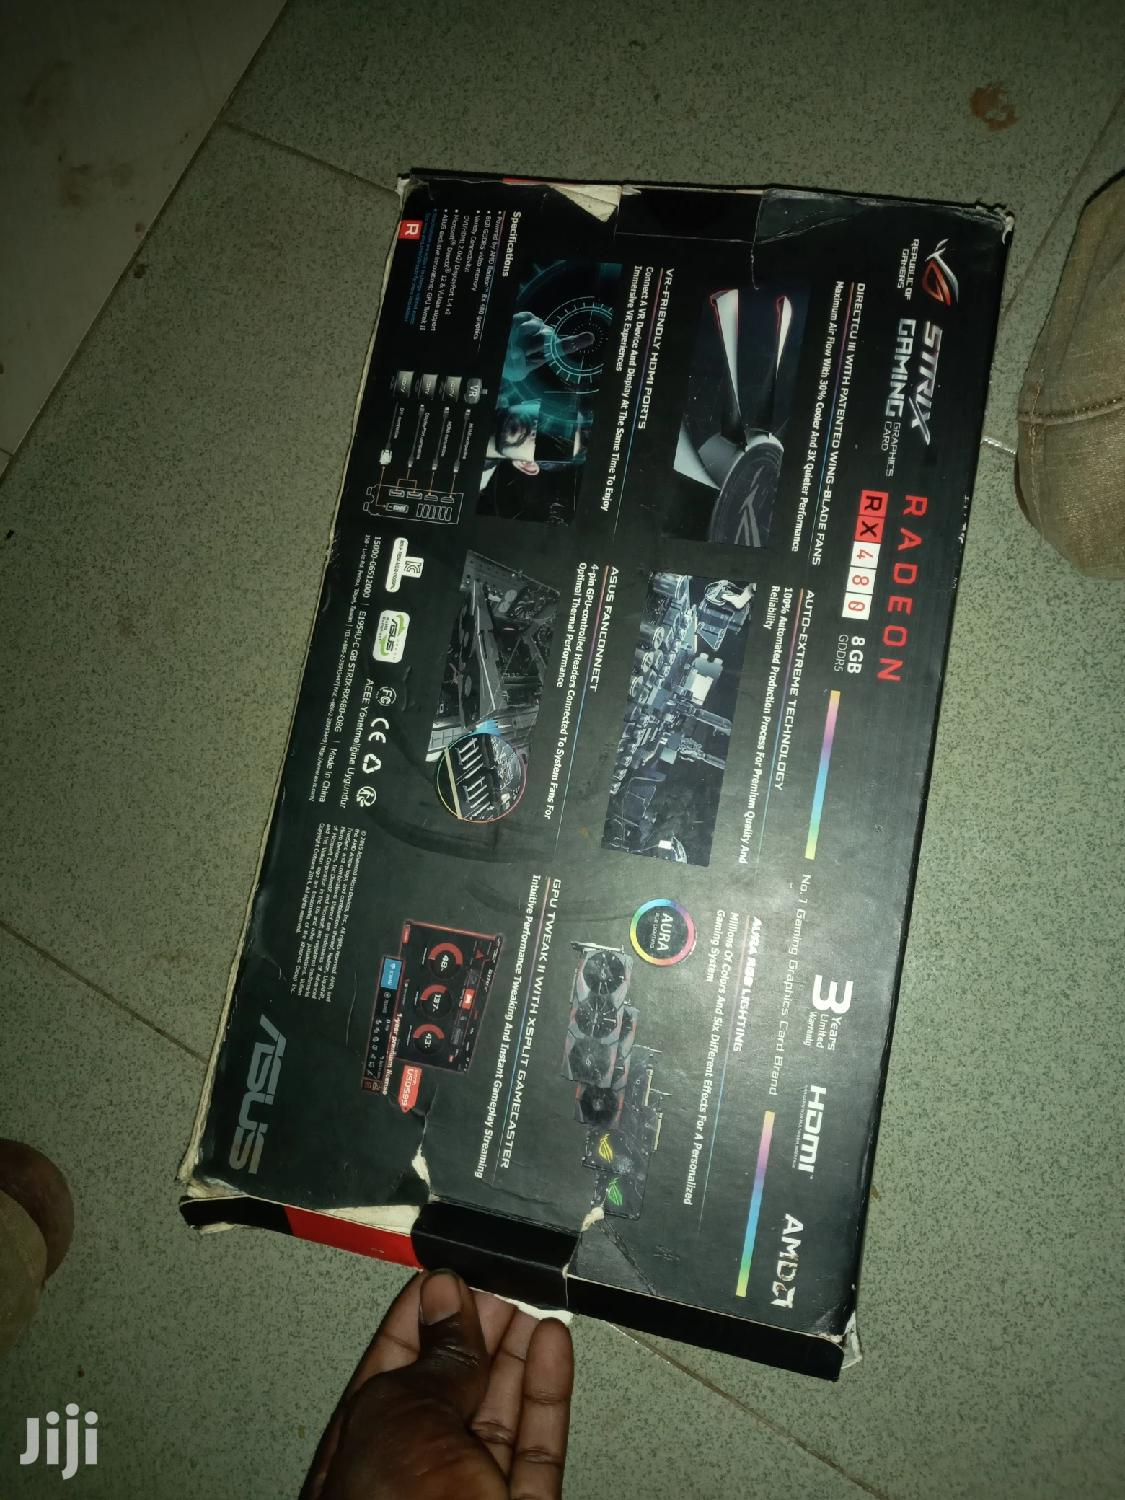 Gaming And Editing Graphics Card RX 480 8gb | Computer Hardware for sale in Bawku Municipal, Upper East Region, Ghana